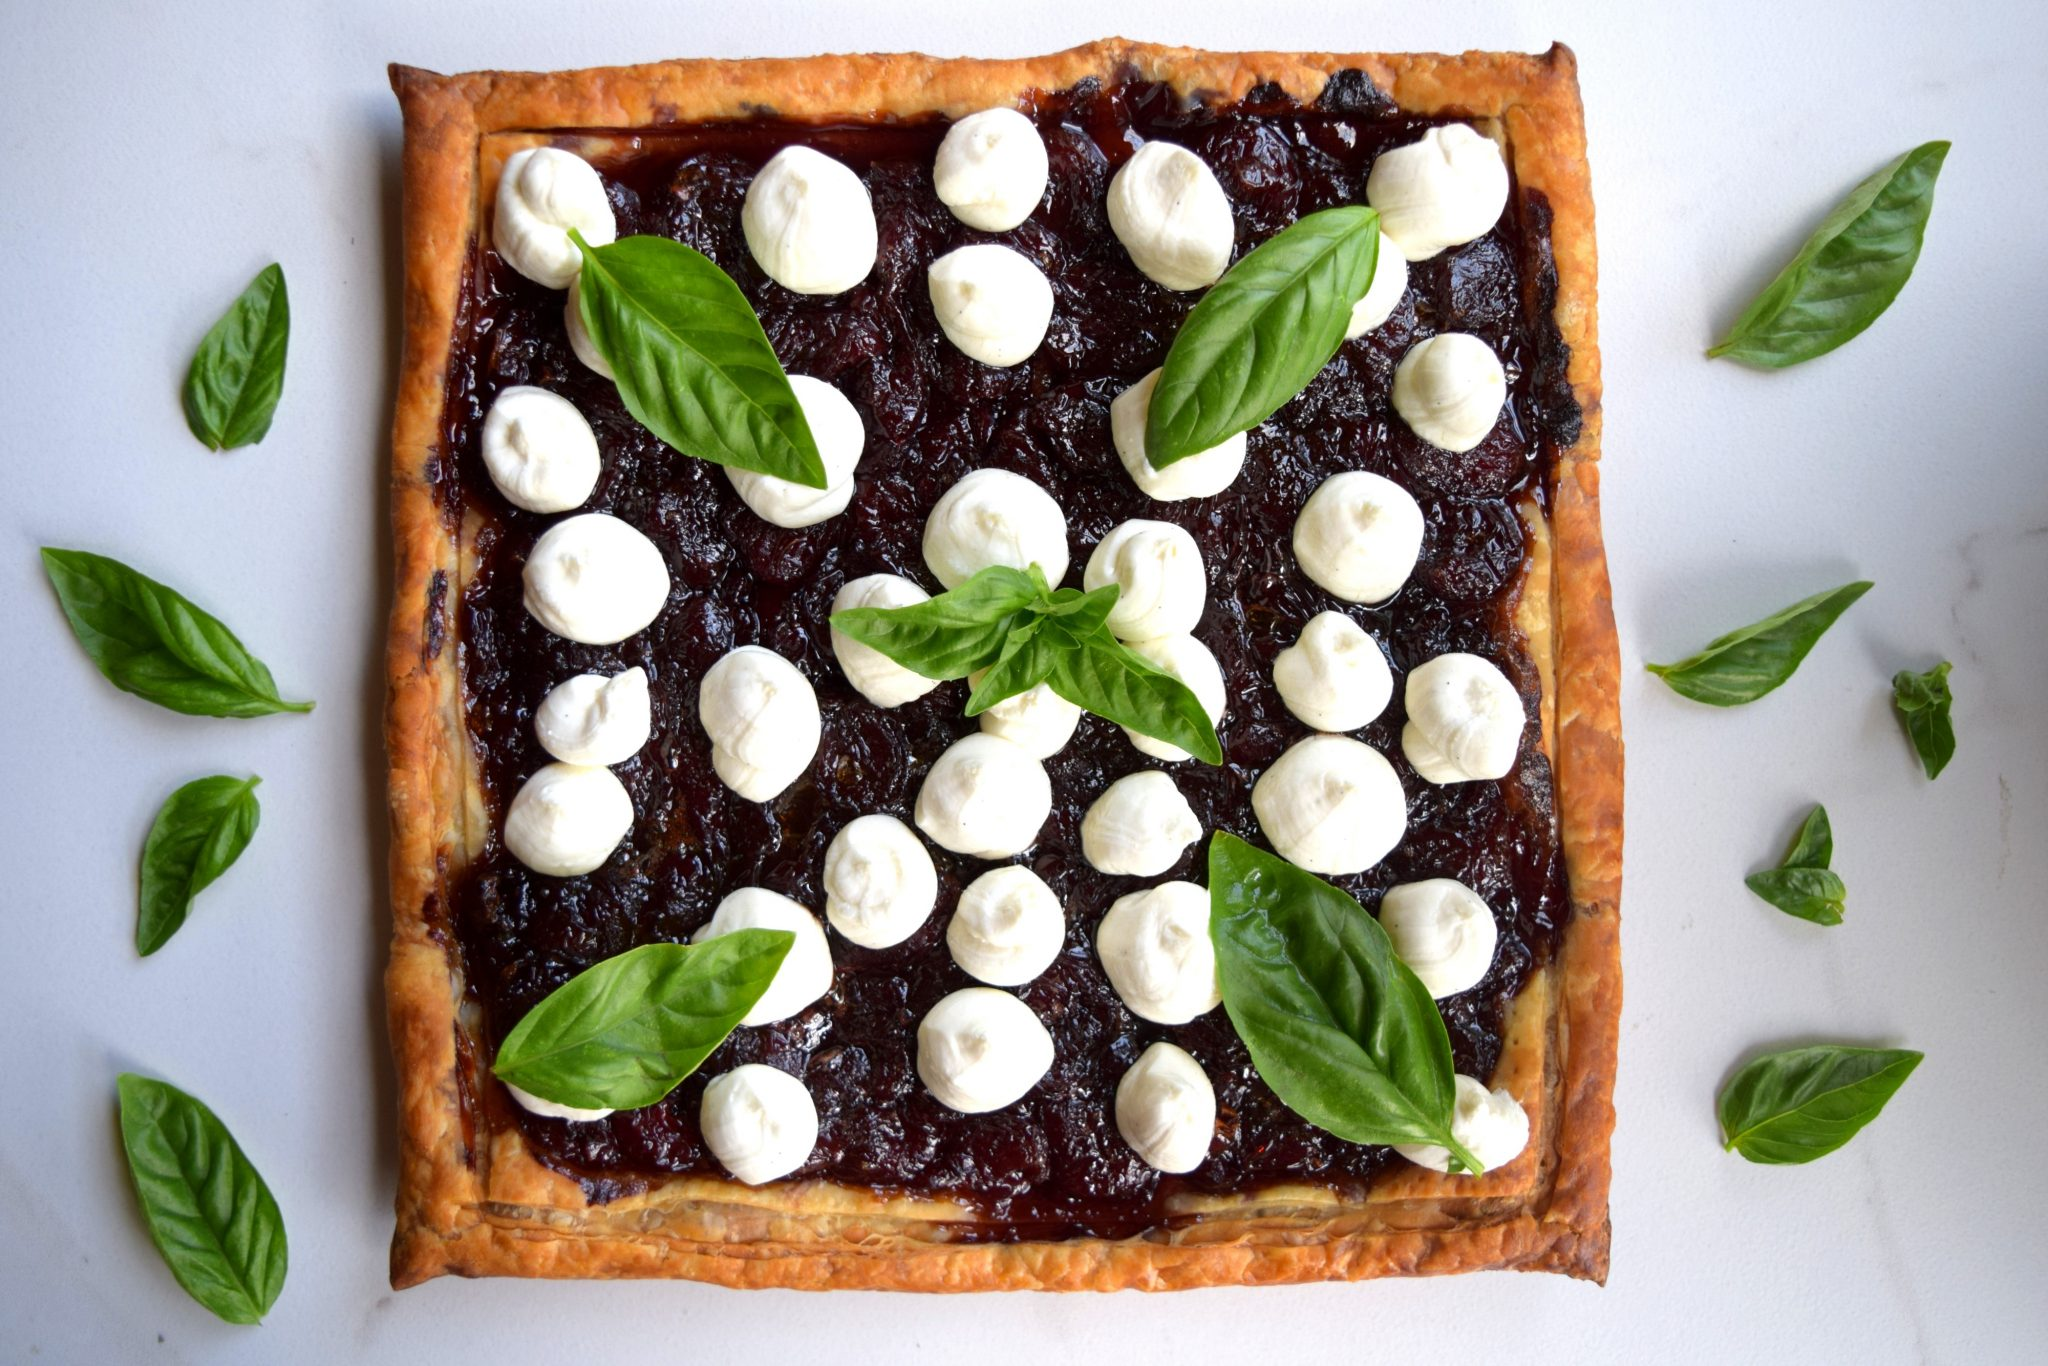 Chocolate Stout Cherry Tart with Honey and Vanilla Goat Cheese